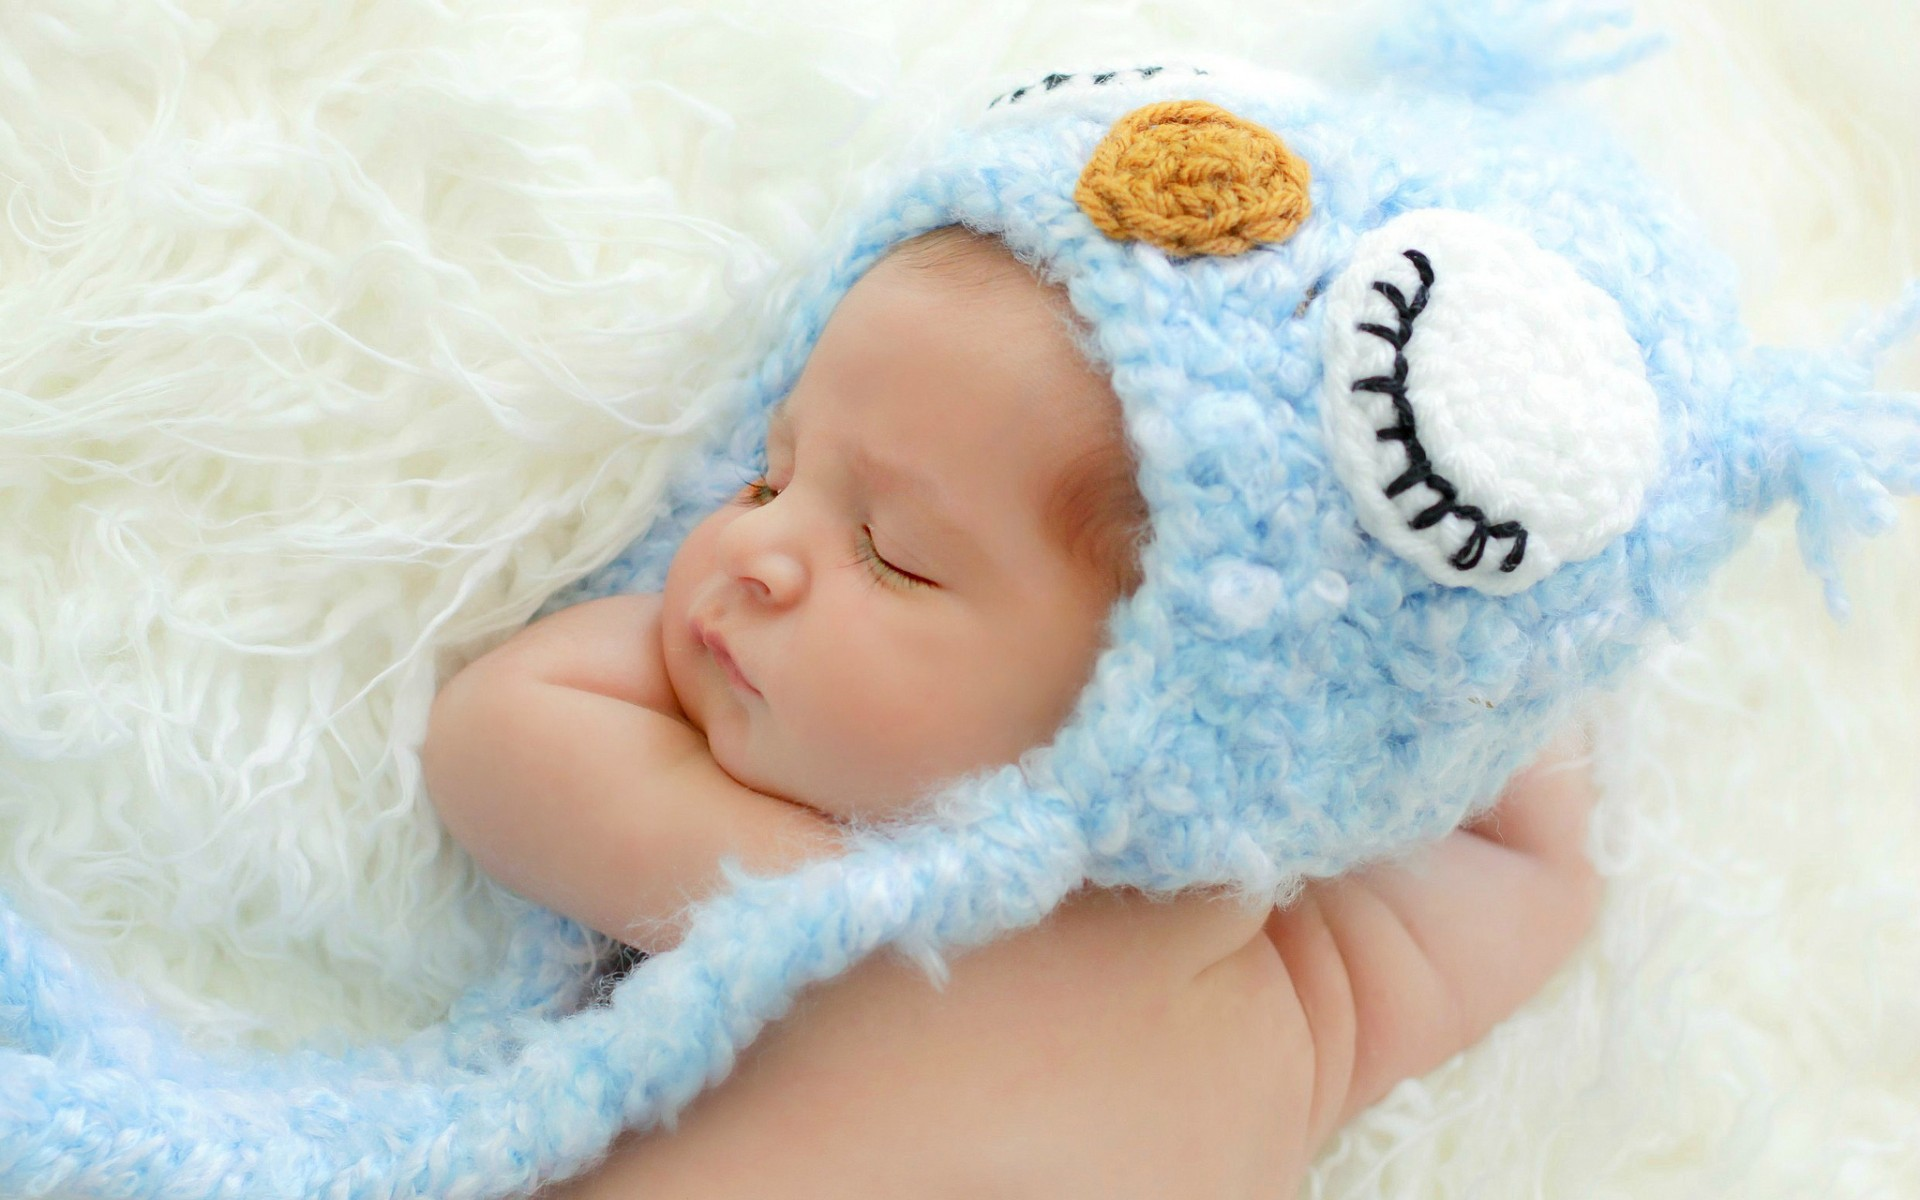 Ropa de bebe hd 2560x1600 - imagenes - wallpapers gratis ...